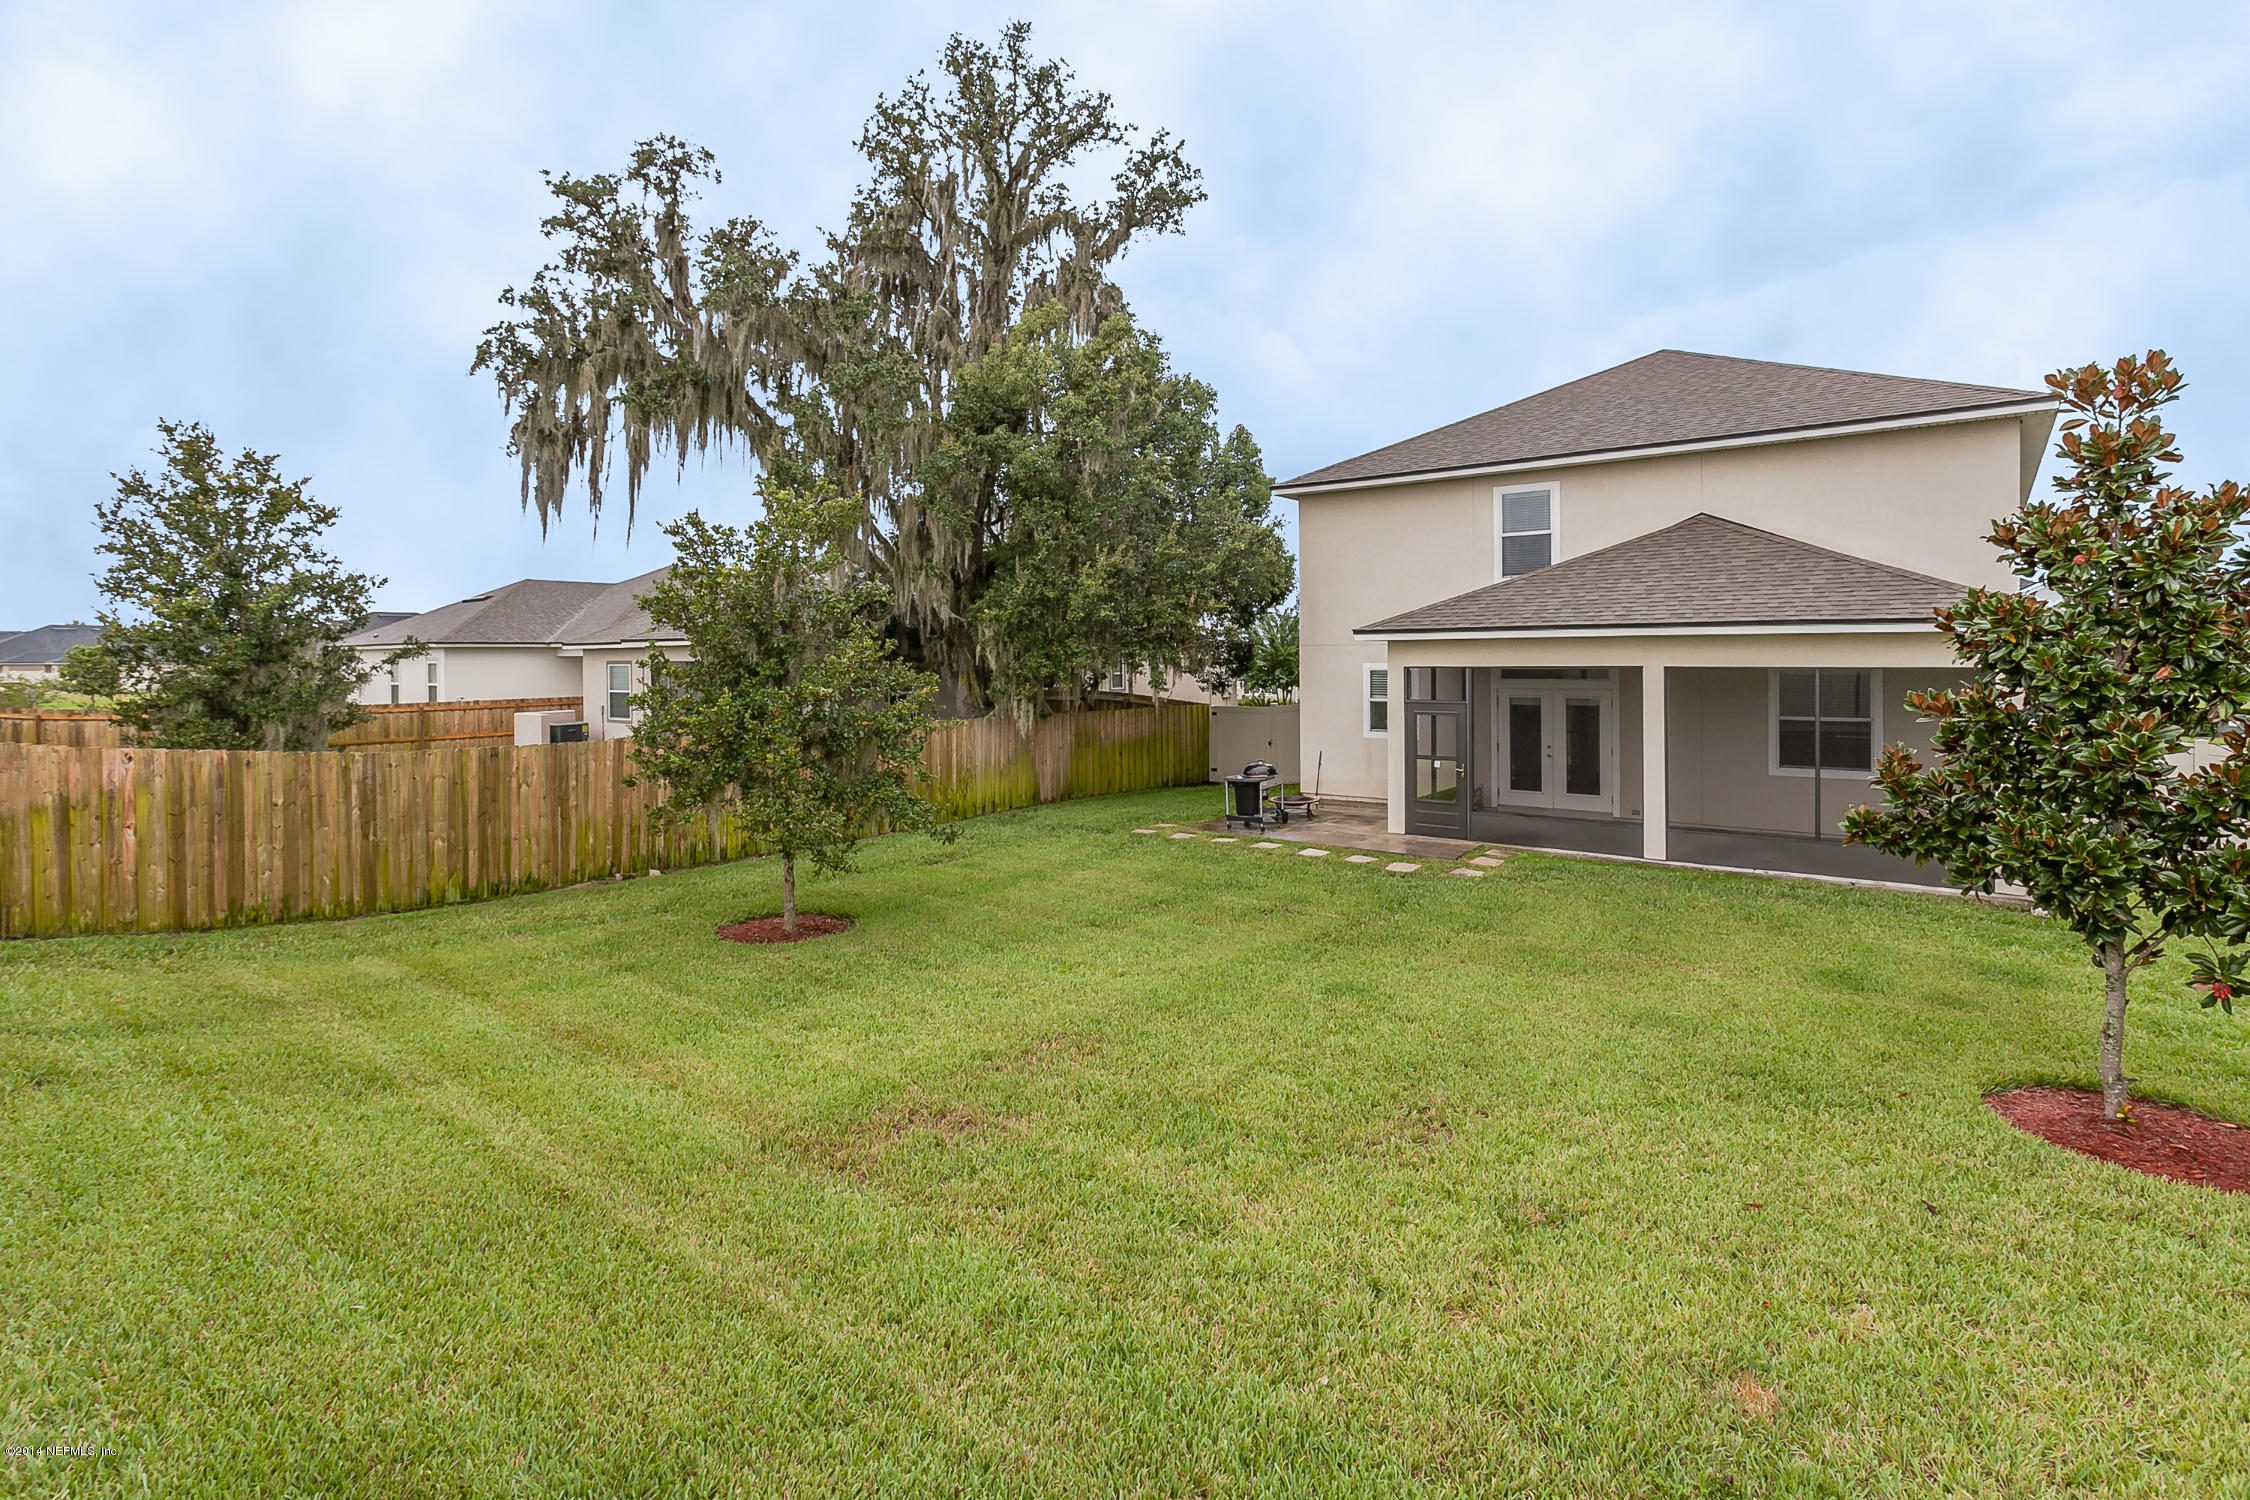 3323 SPRING VALLEY, GREEN COVE SPRINGS, FLORIDA 32043, 4 Bedrooms Bedrooms, ,2 BathroomsBathrooms,Residential - single family,For sale,SPRING VALLEY,972851